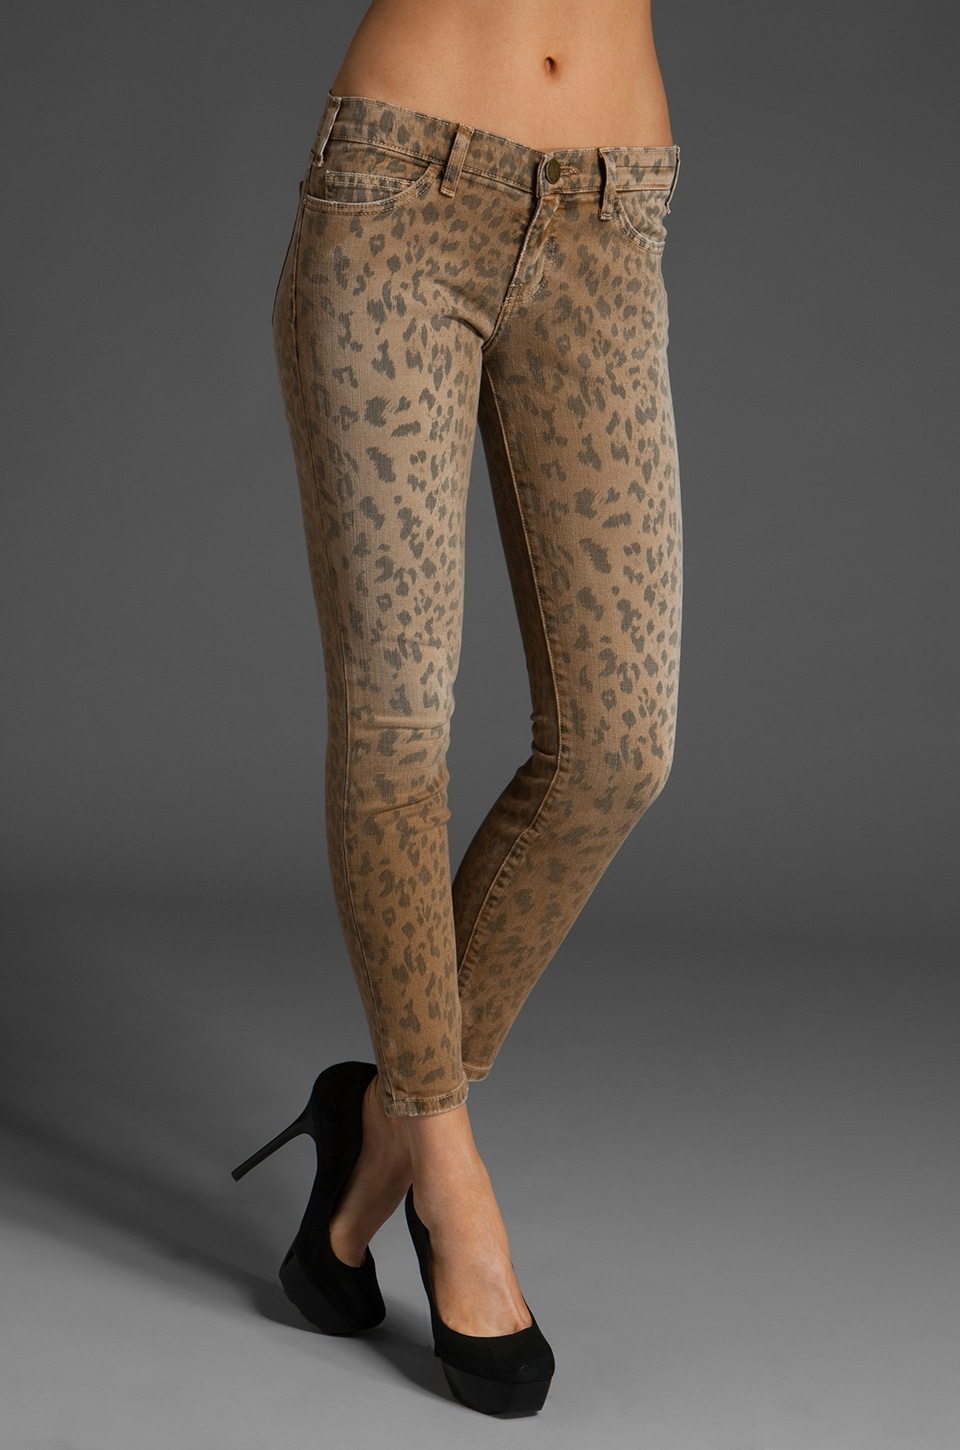 Current/Elliott The Stiletto in Camel Leopard